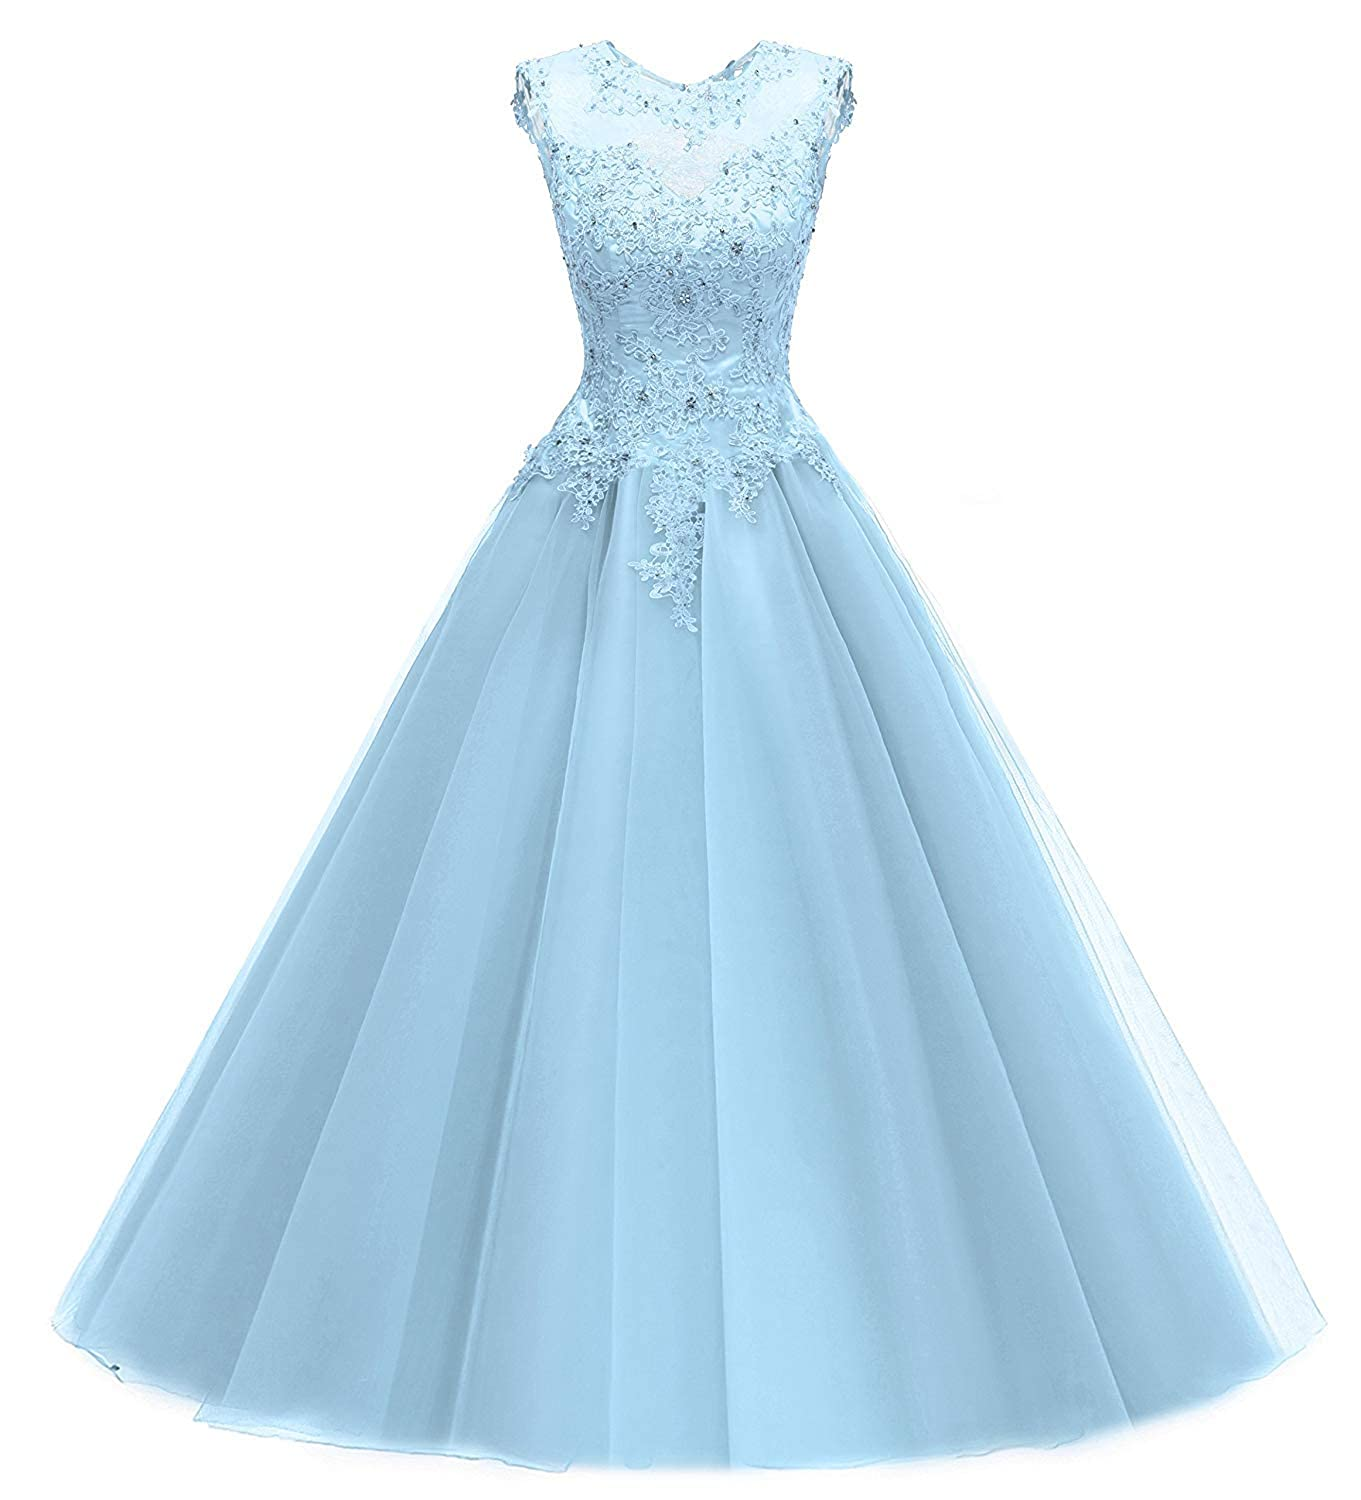 Baby bluee PromQueen Women Quinceanera Dresses Lace Beading Evening Party Dress Sequined Appliques Prom Gown Long